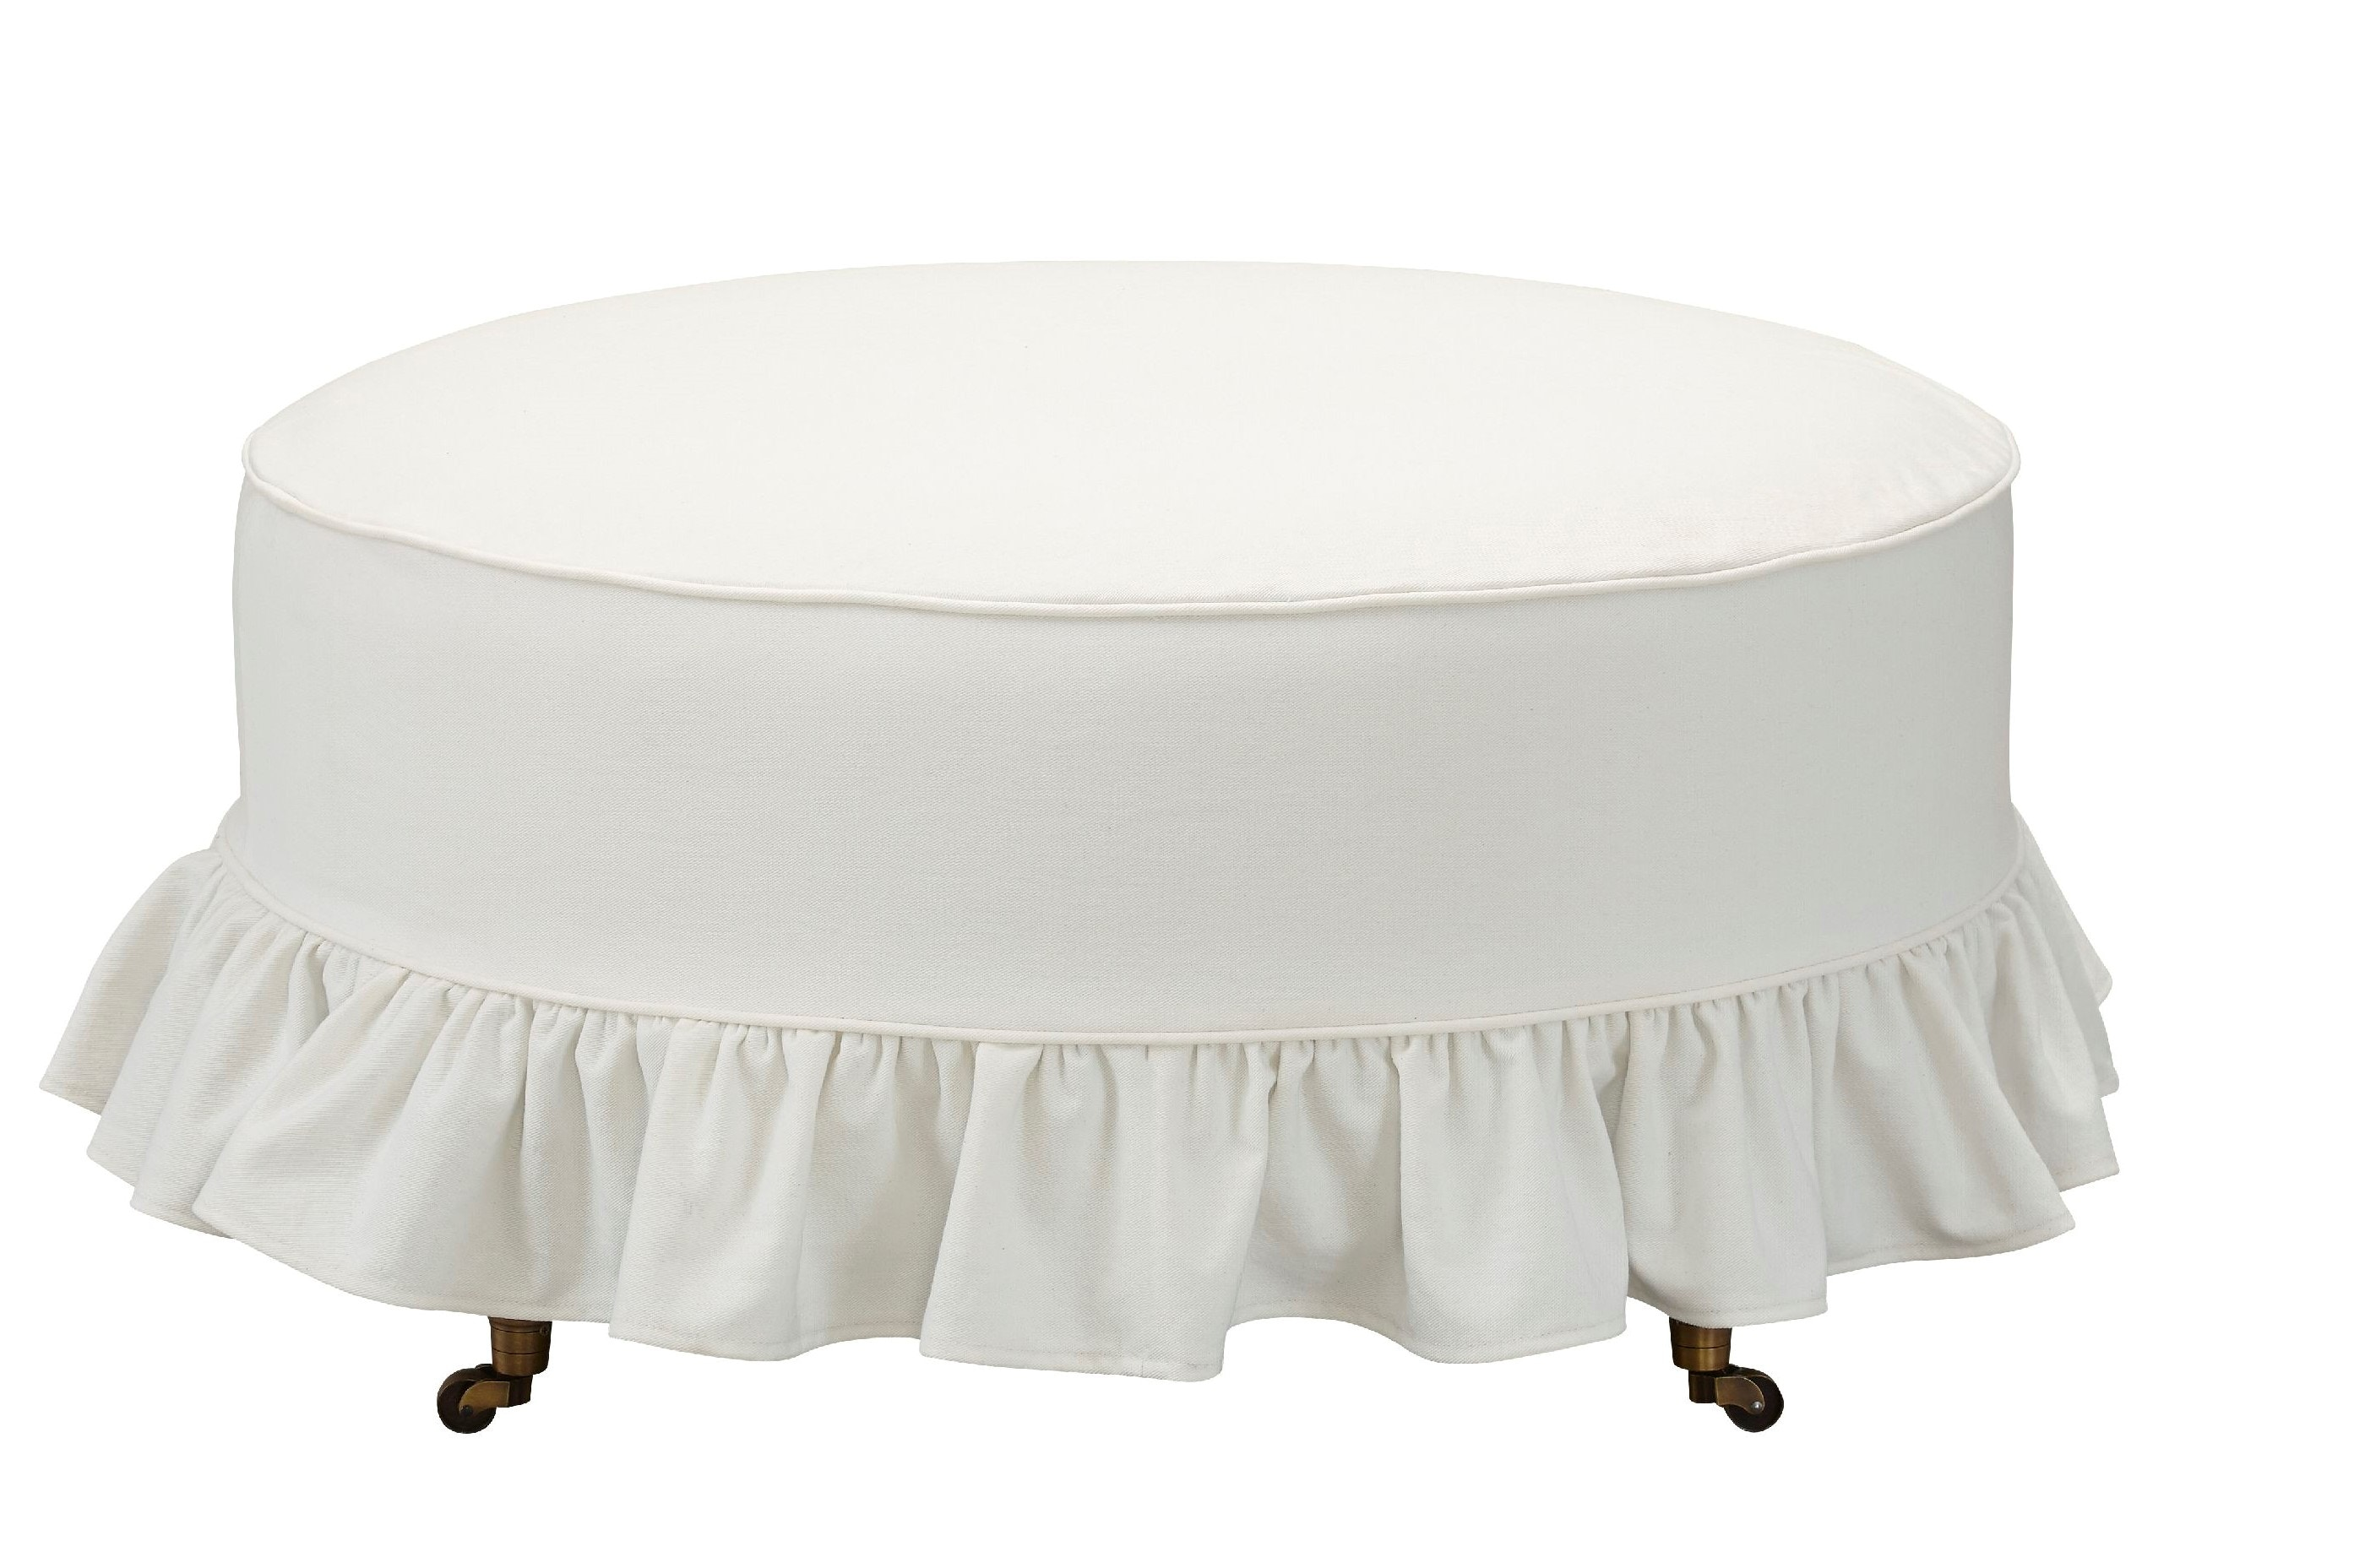 Stacy Select Abigal Slipcover Ottoman 13455